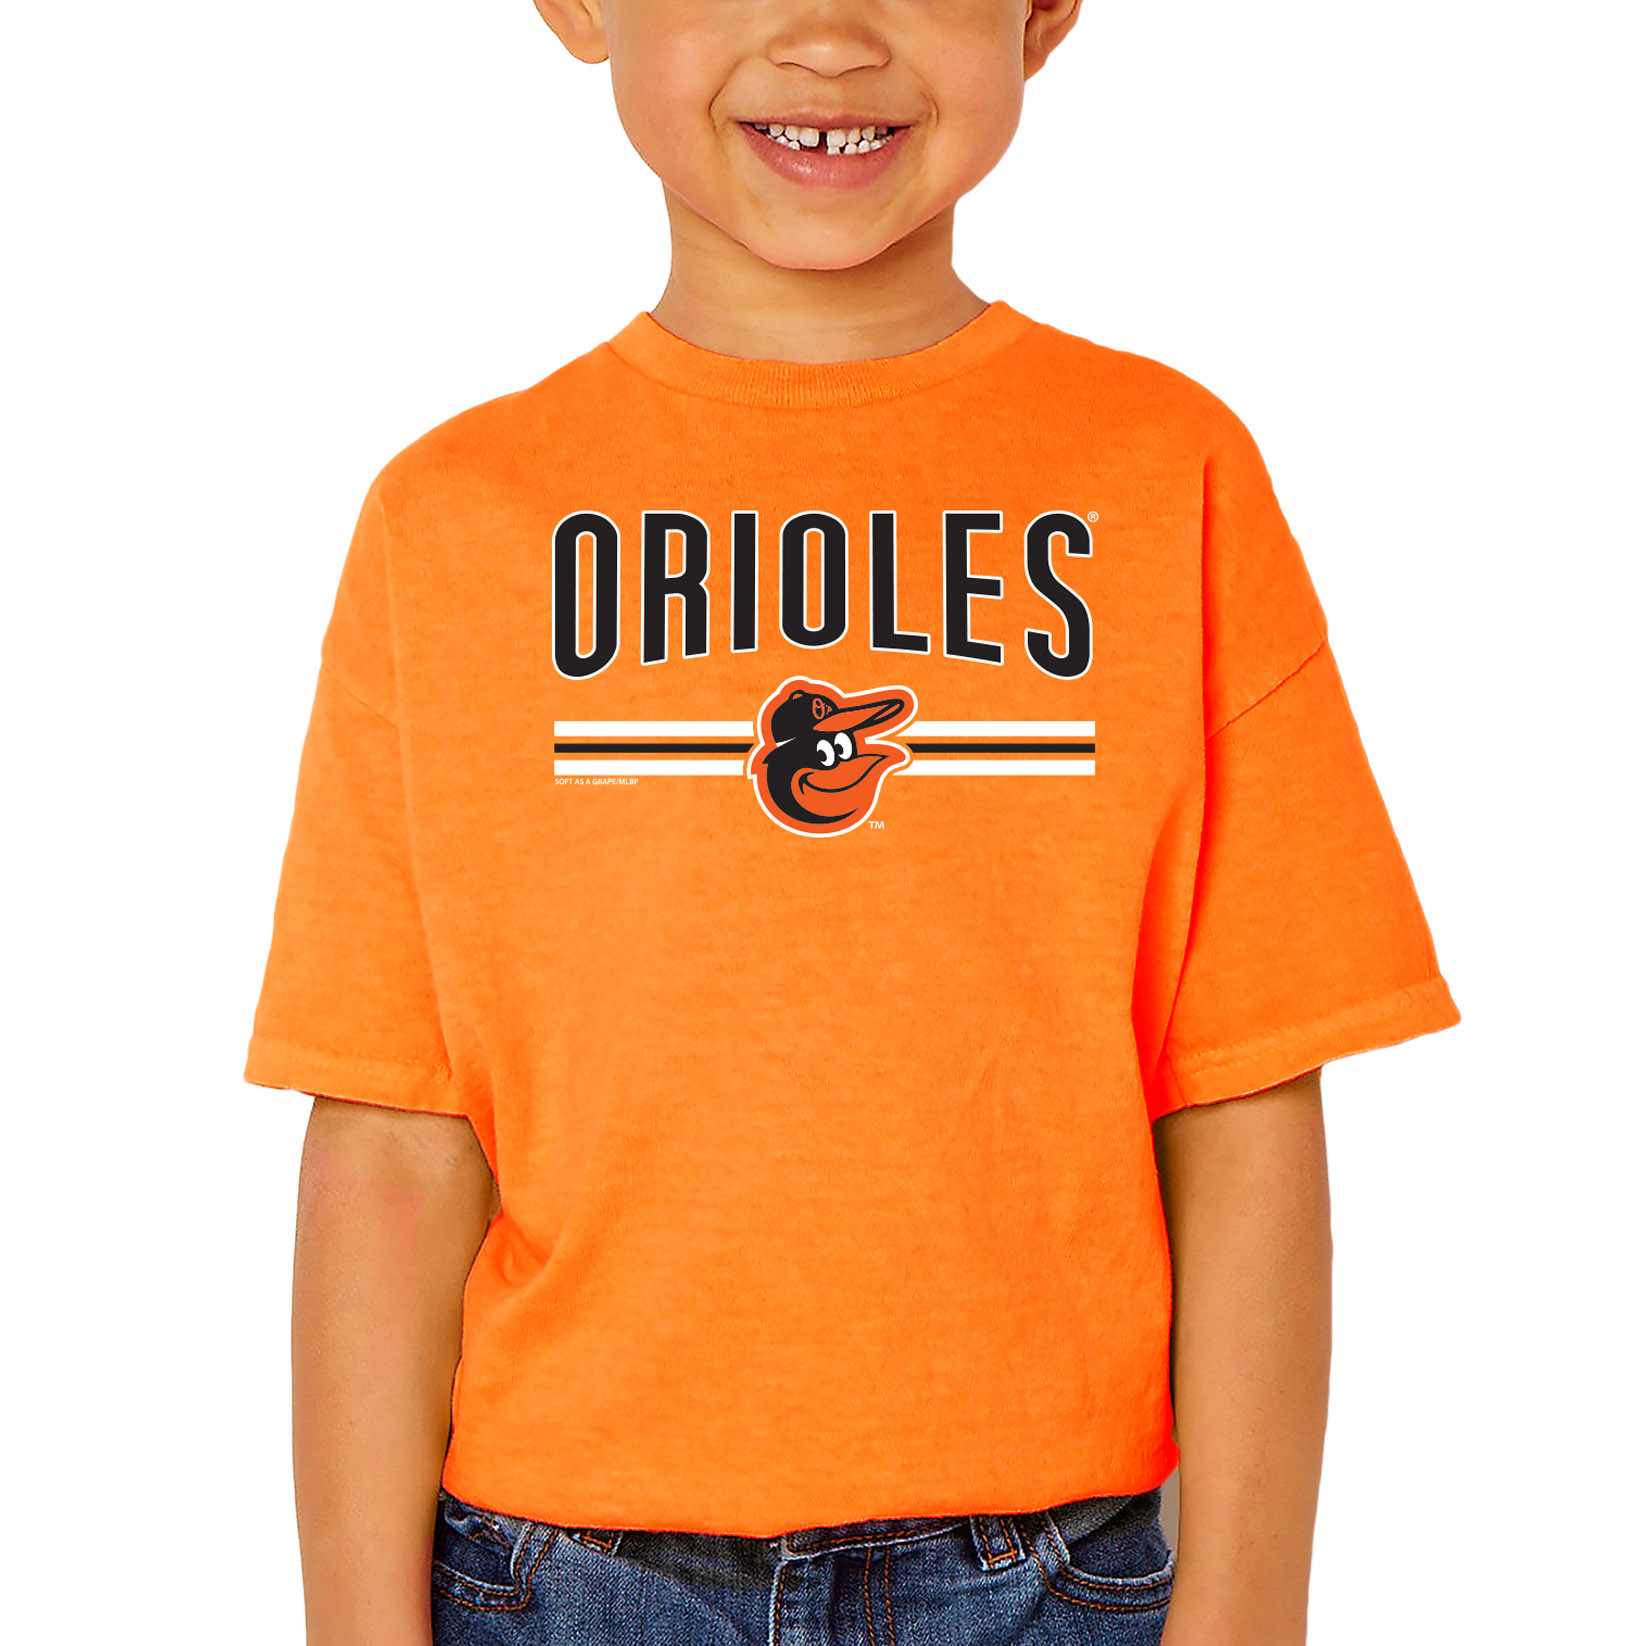 Baltimore Orioles Soft as a Grape Youth On Base Crew T-Shirt - Orange